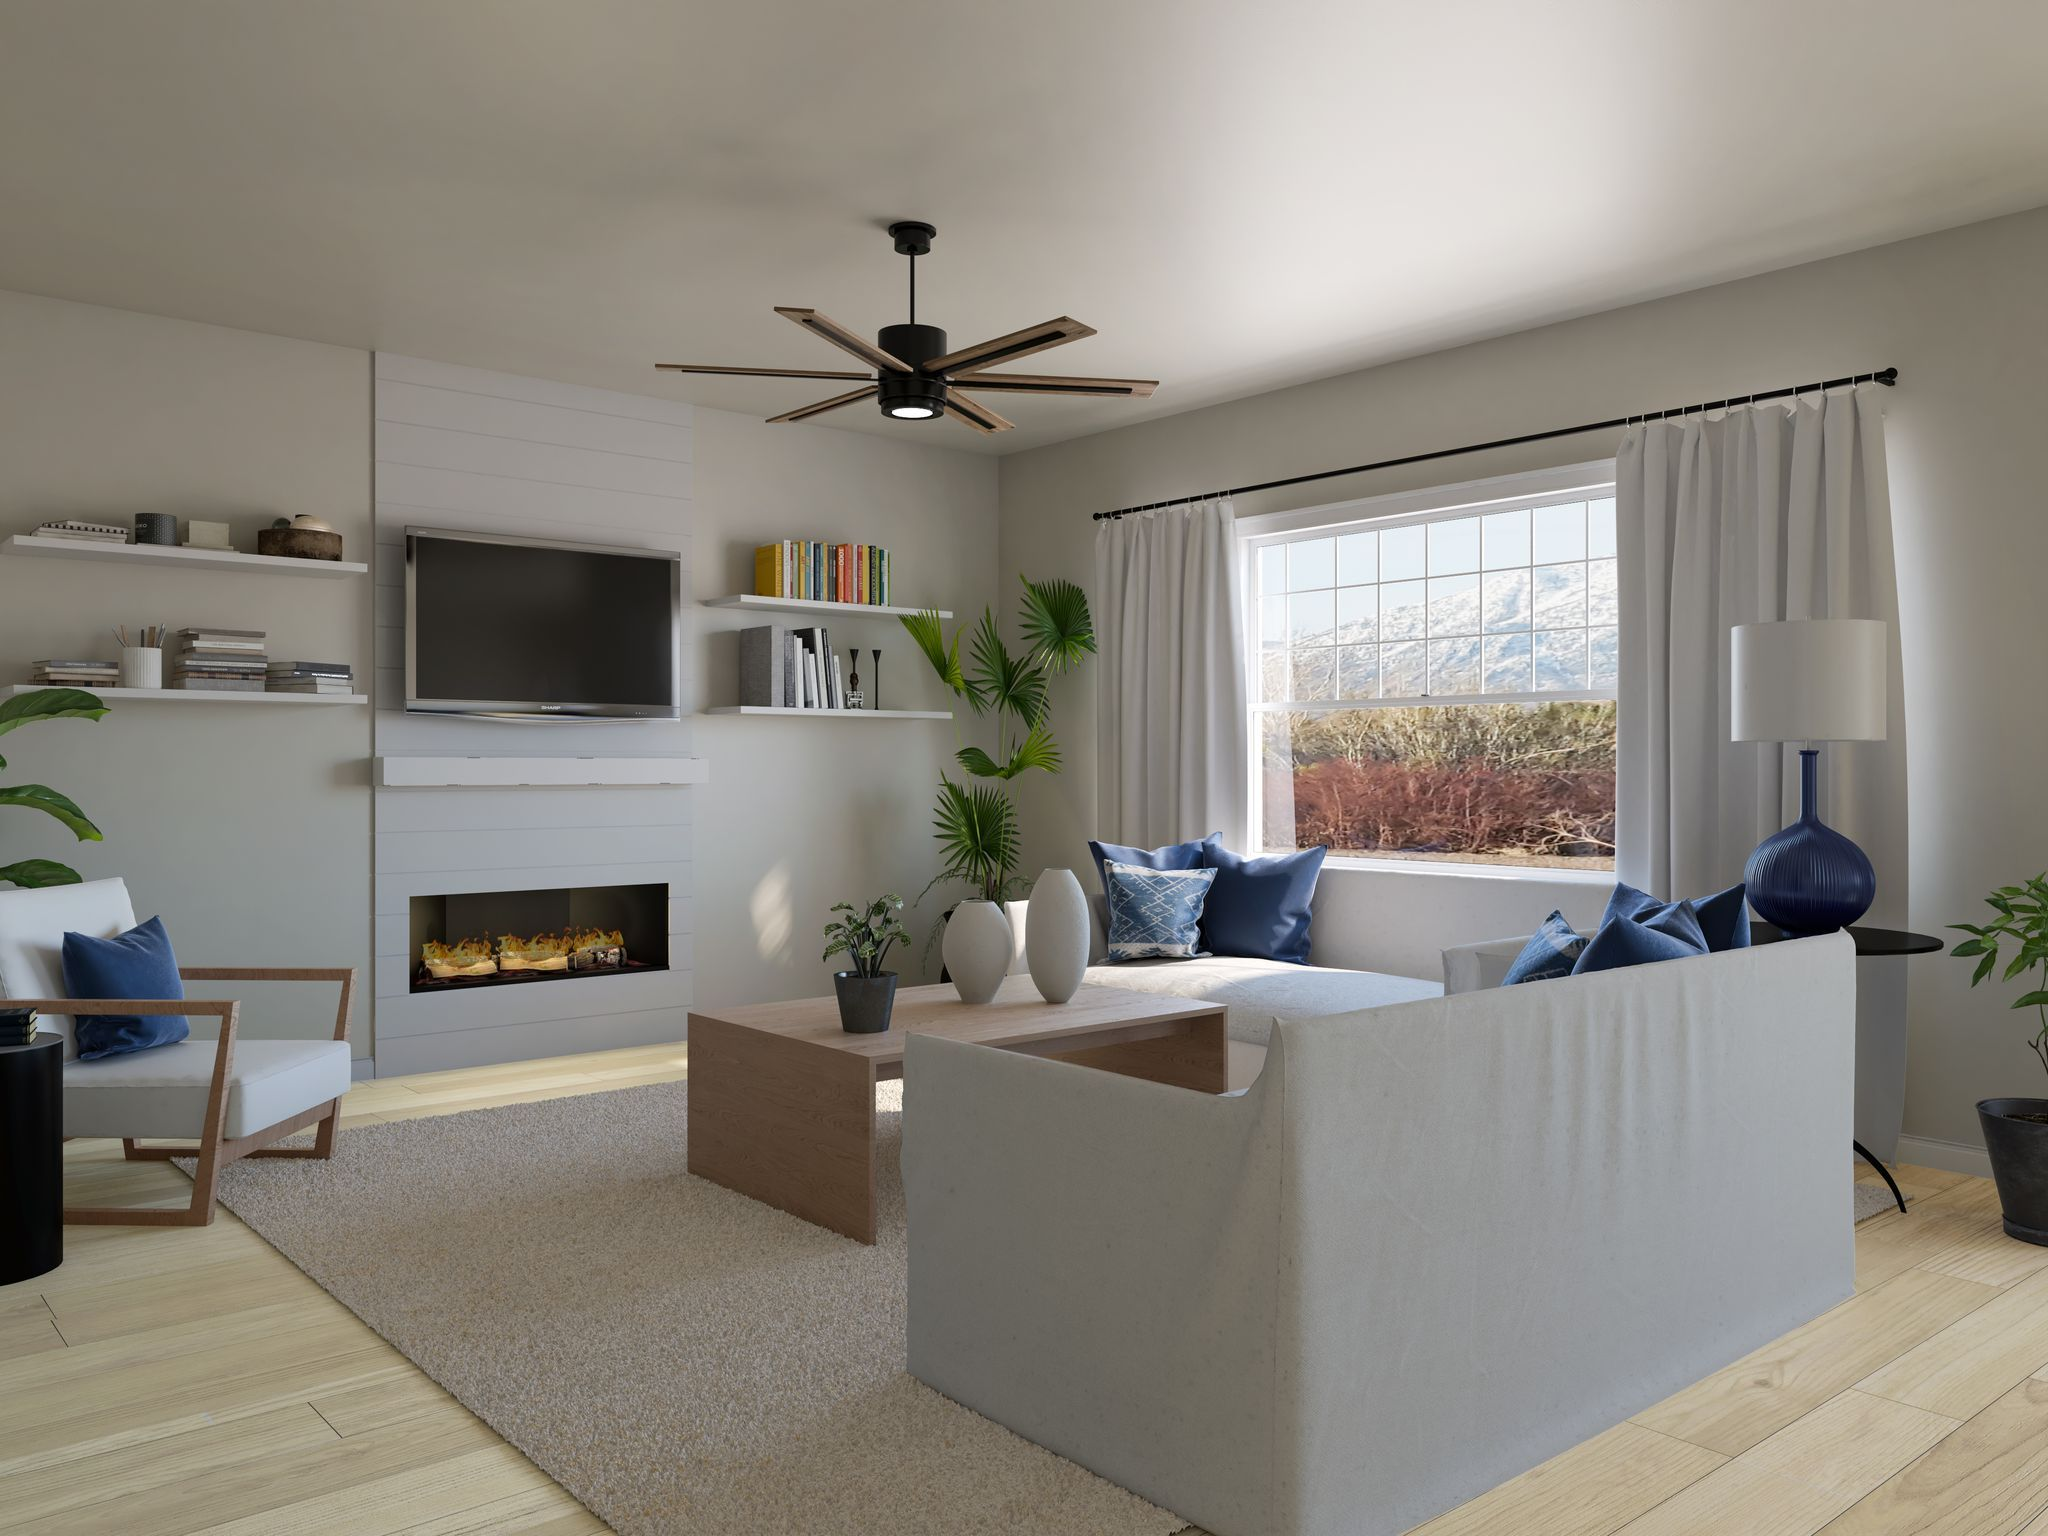 Living Area featured in the Residence 1 By Santa Ynez Valley Construction in Reno, NV